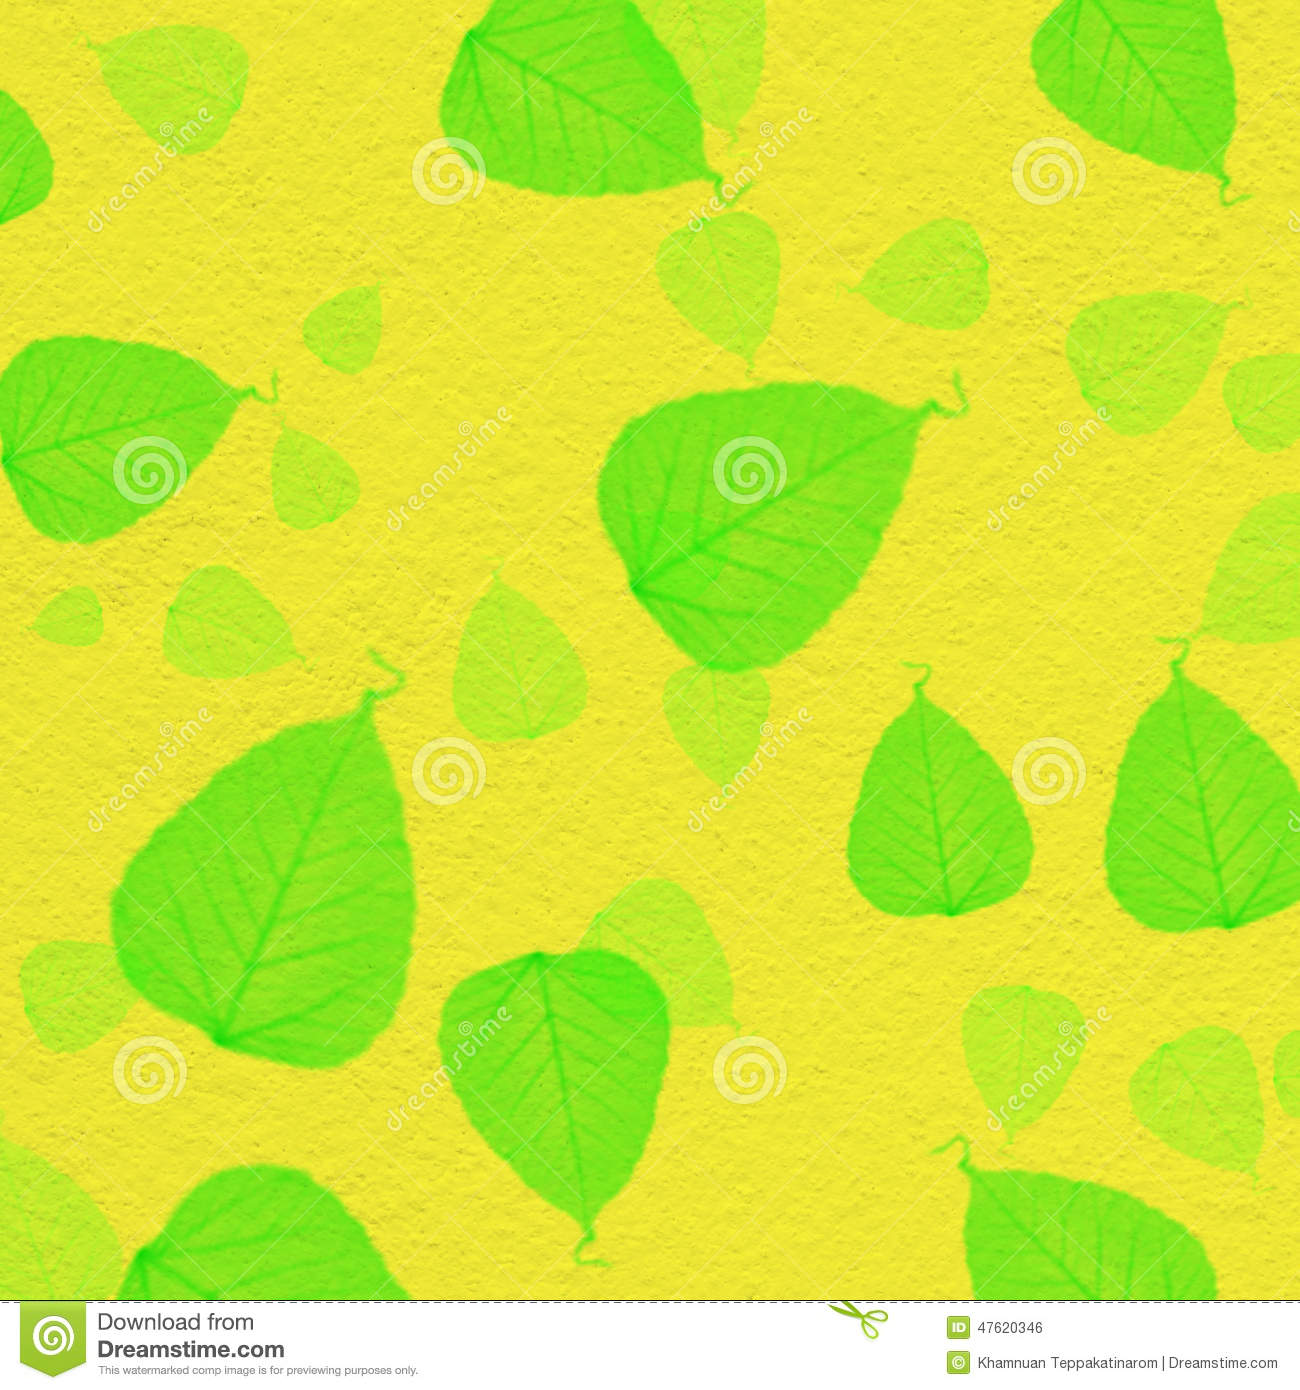 Yellow Wall Texture With Green Leaf Paint Stock Photo - Image of ...